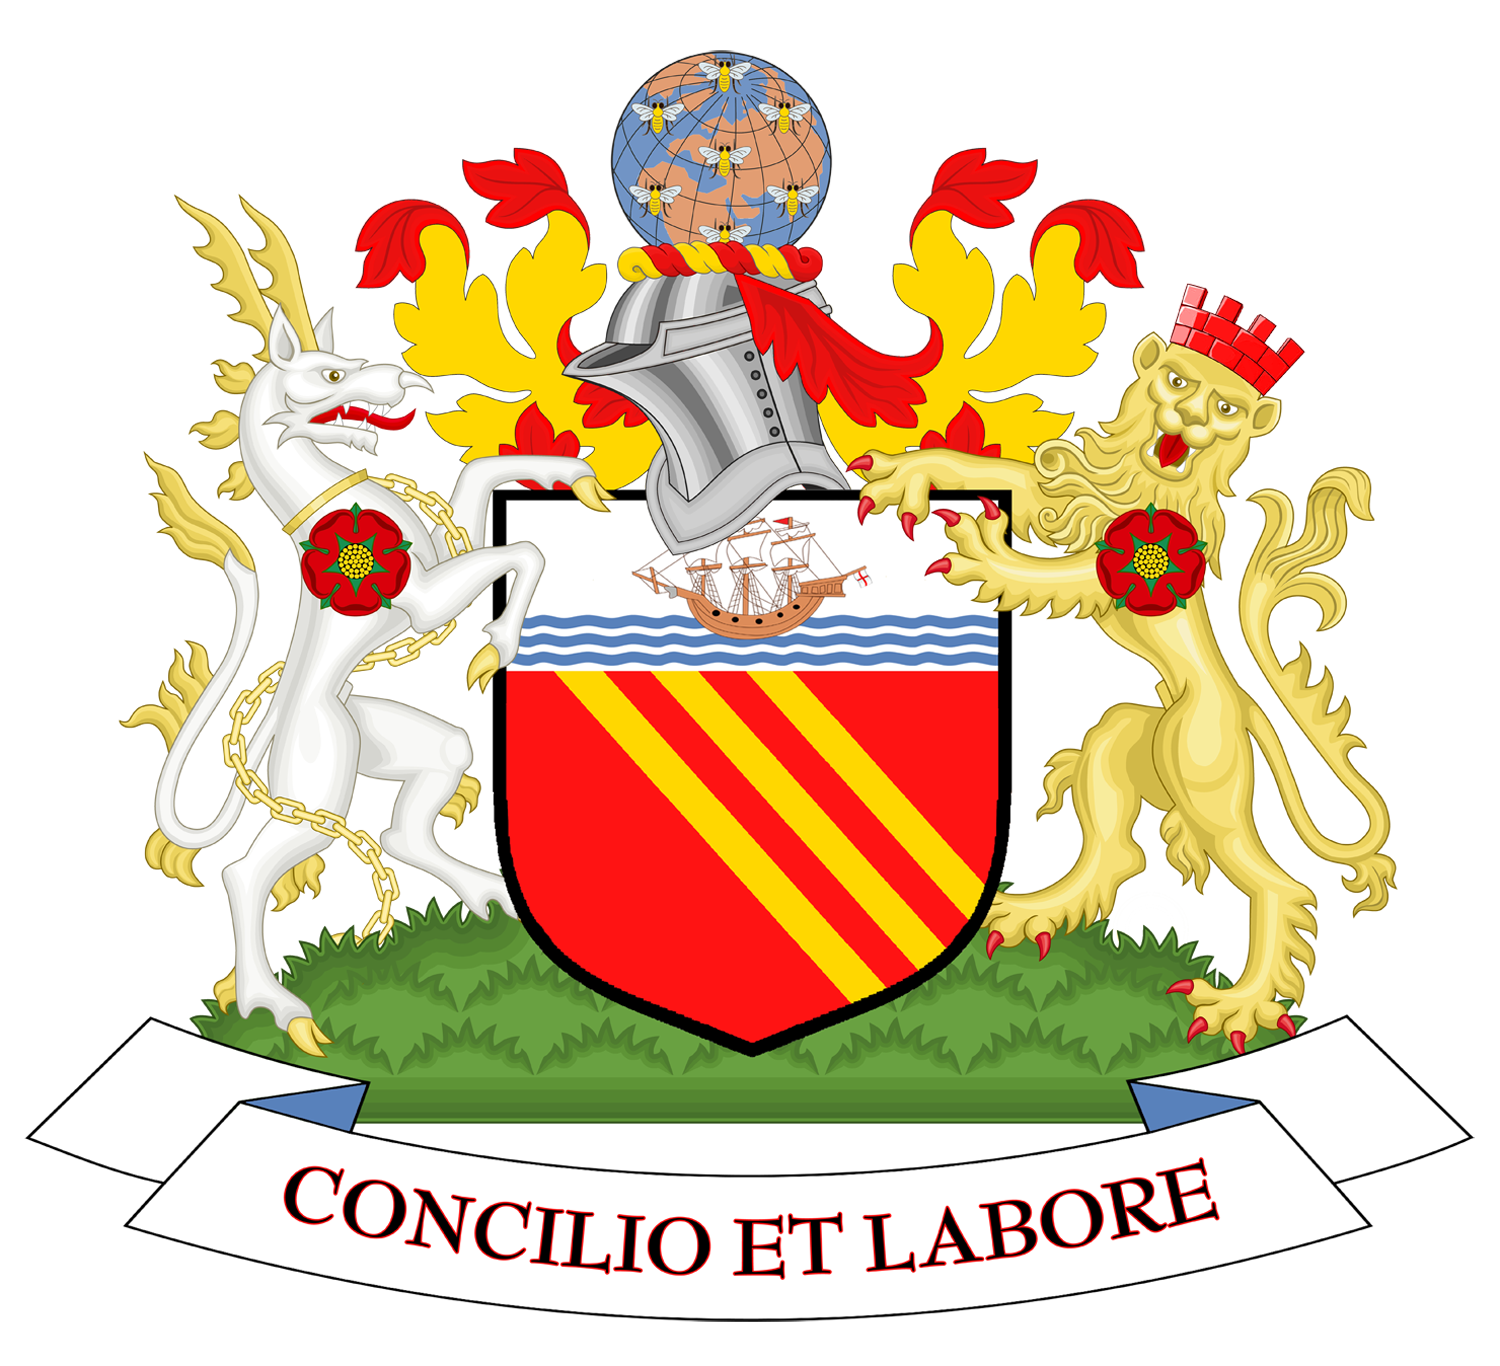 Coat Of Arms Of Manchester City Council.png - Manchester City, Transparent background PNG HD thumbnail